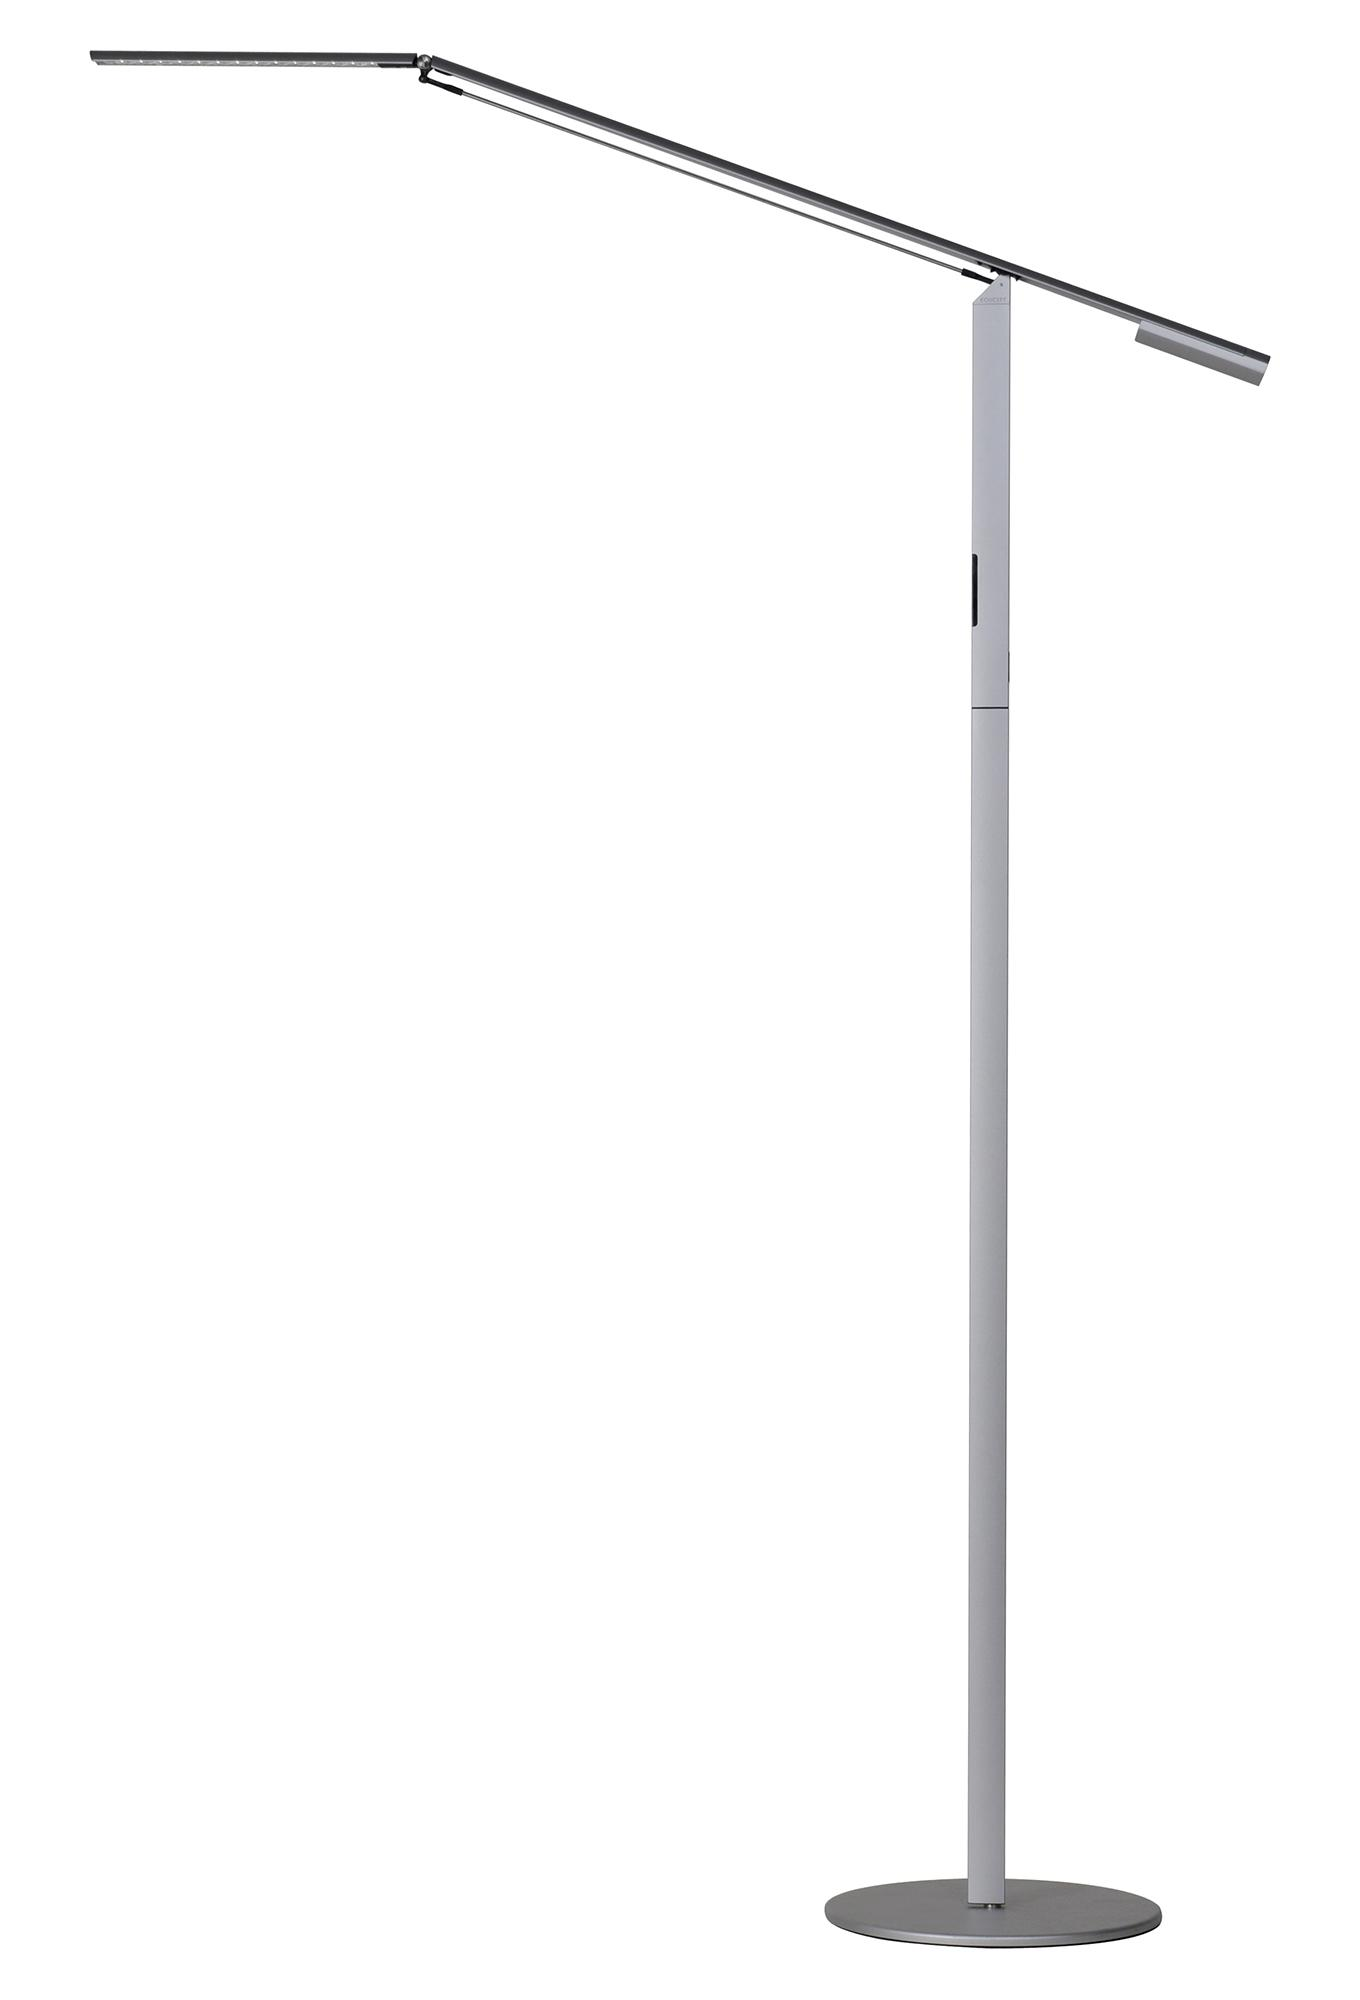 Koncept ELX-A-W FLR LED Floor Lamp Equo 28 Mid Power Daylight Touch Sensitive Dimmer 6 Watts Rotational LED Panel